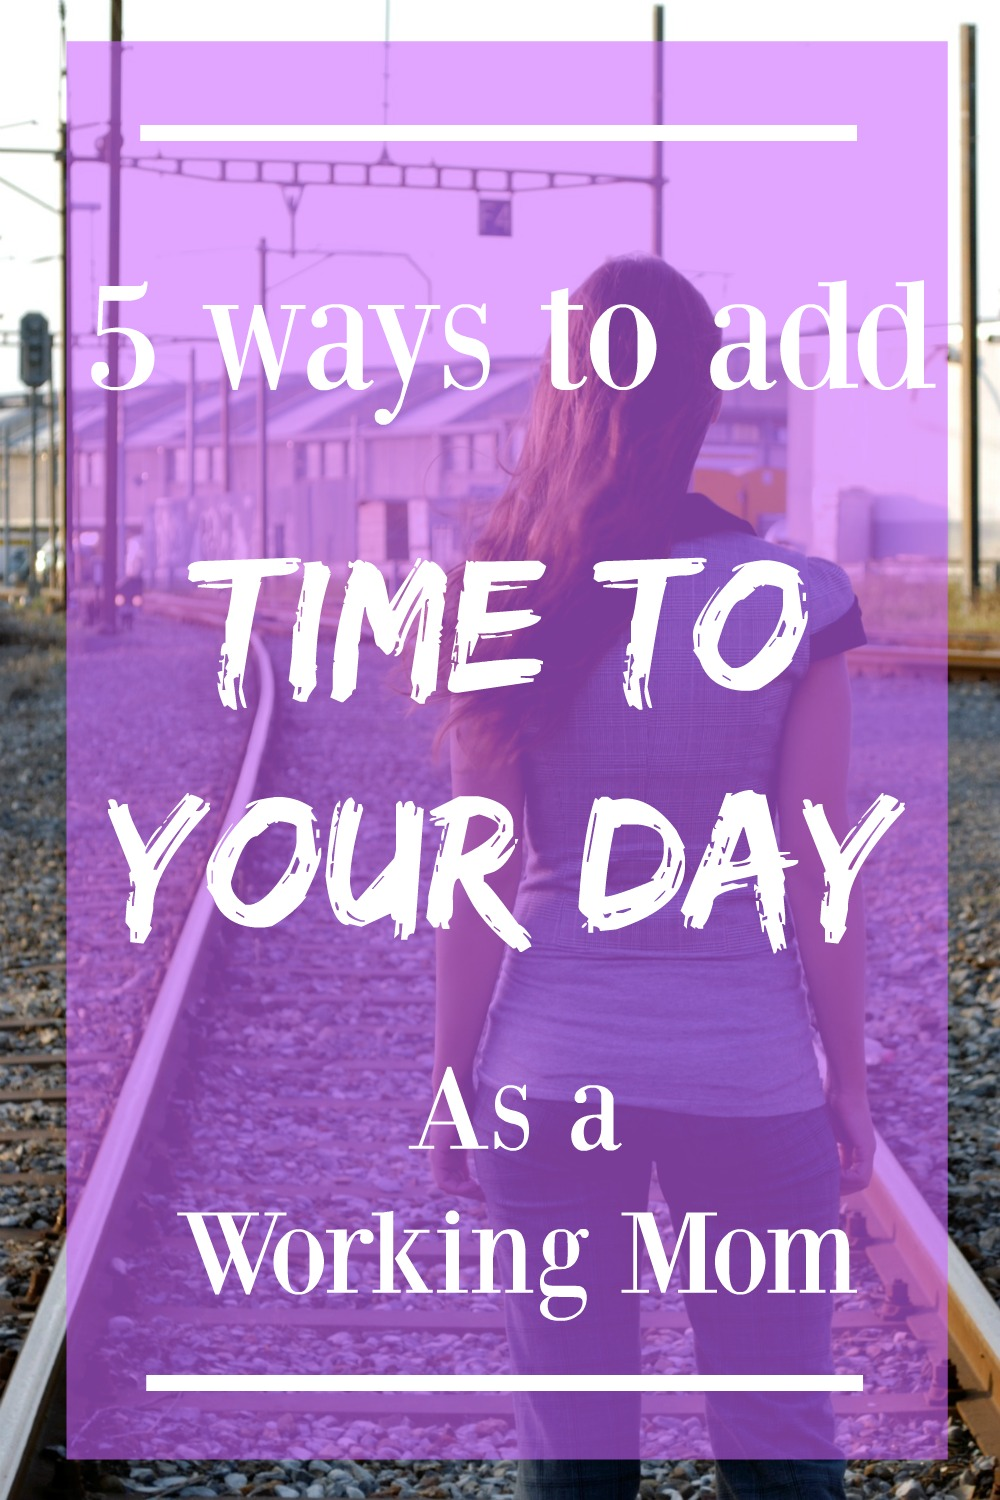 5-ways-to-add-time-to-your-day-as-a-working-mom